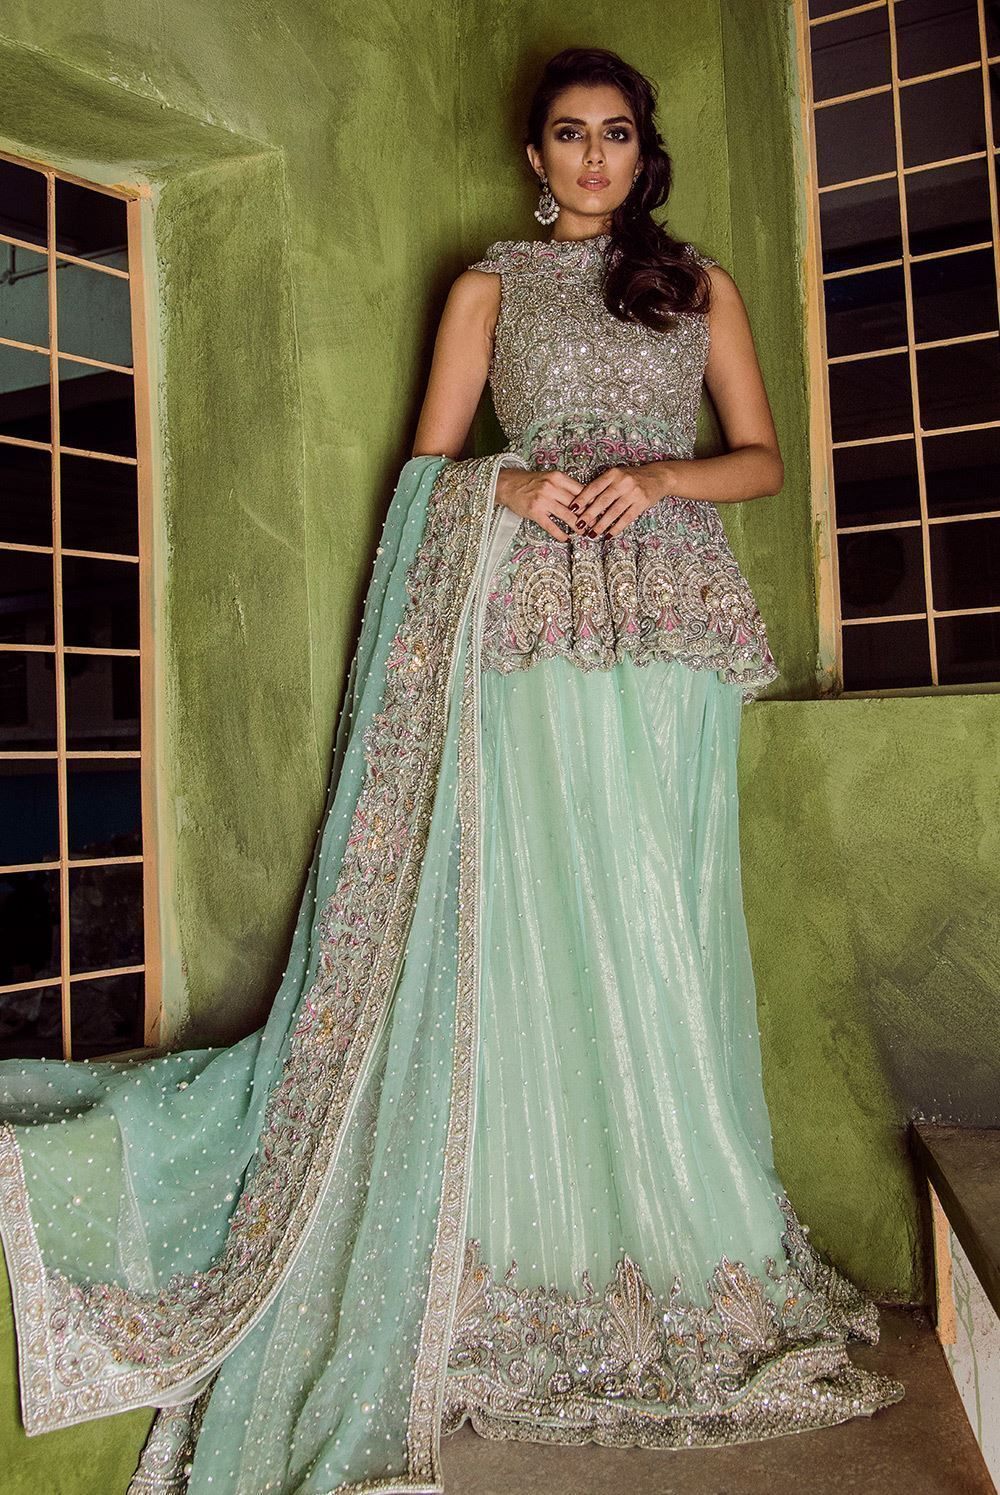 Bridal Peplum Embellished with Crystals for a Modern Pakistani Bridal Mehndi Outfit